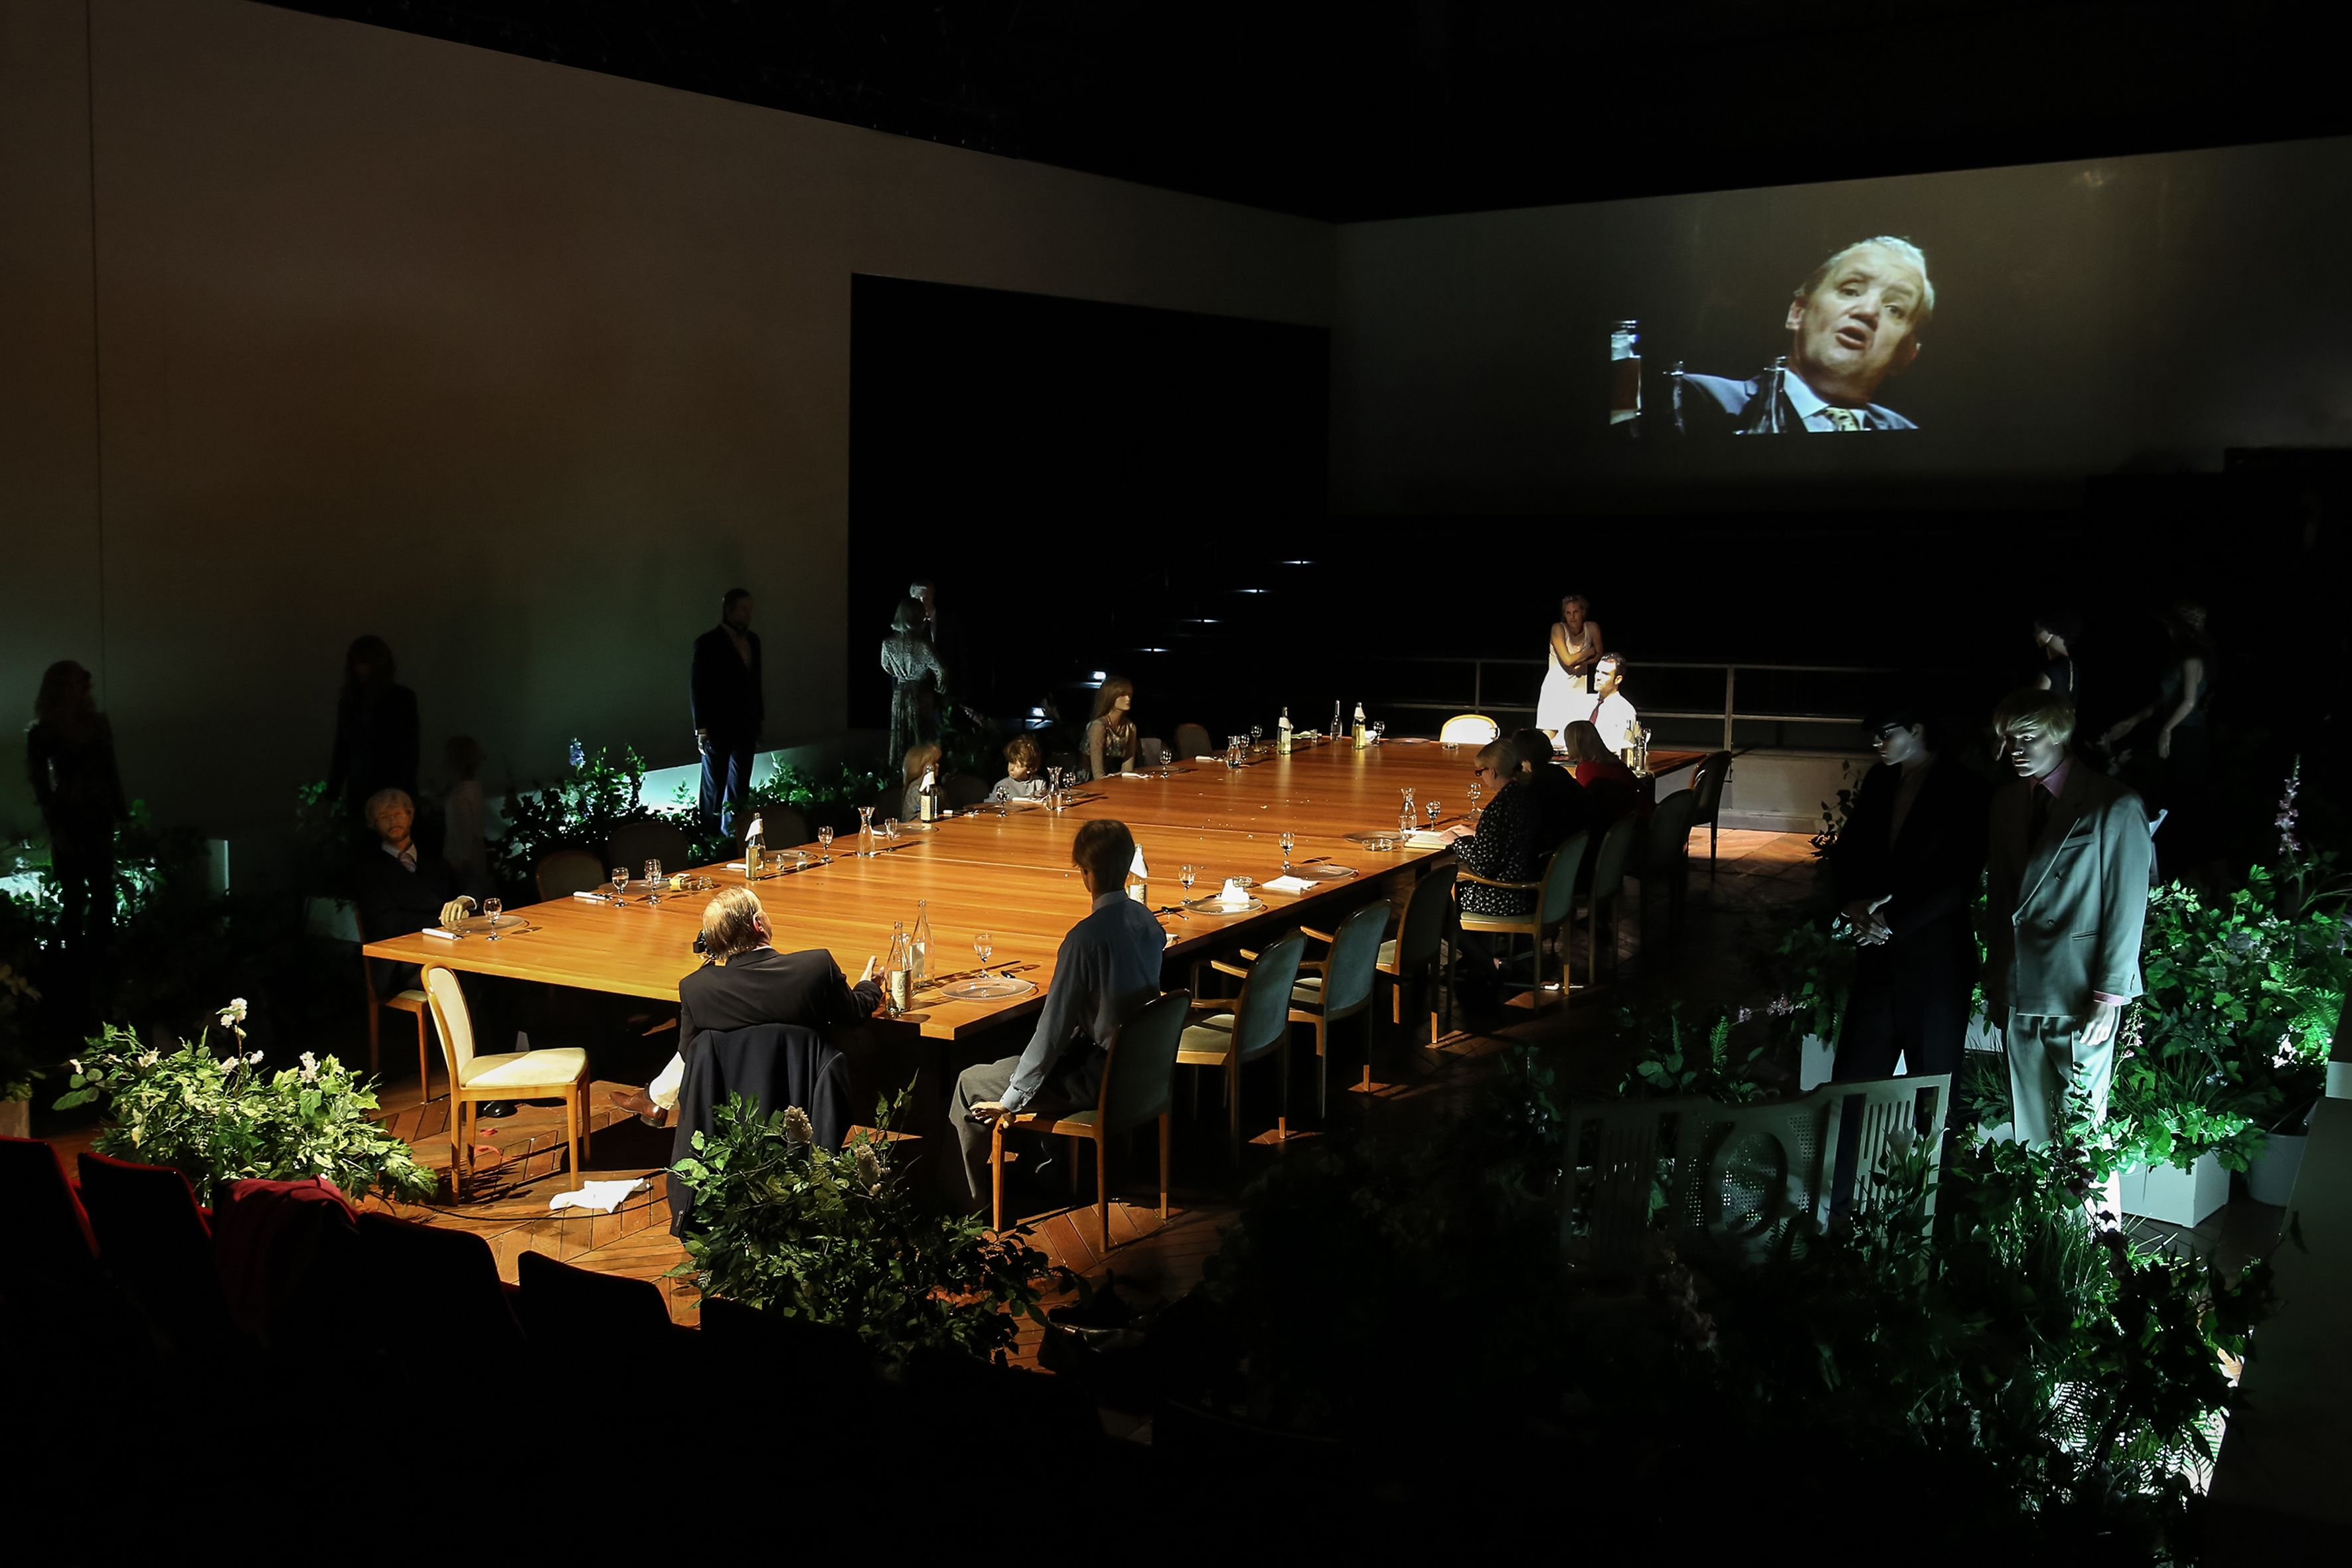 Stagedesign for Thomas Vinterbergs FESTEN/DAS FEST, a play for Theater Bonn, Germany Sebastian Hannak